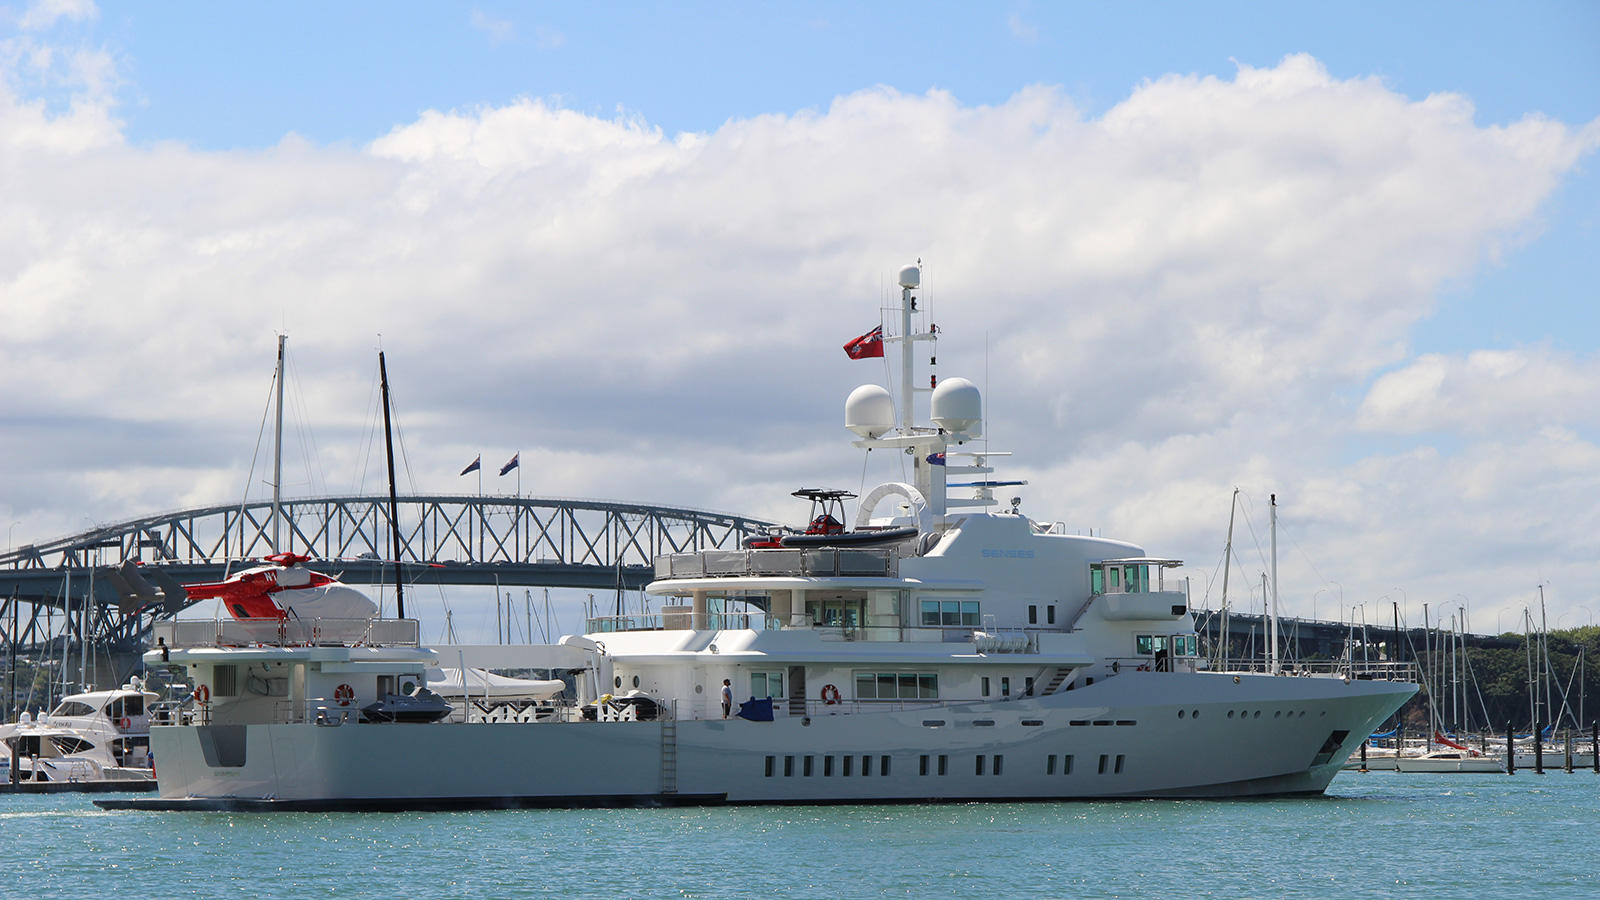 XWT8m7YCT8a6oFN2ejD1_Senses-super-yacht-in-Auckland-after-IMG-refit-1600x900